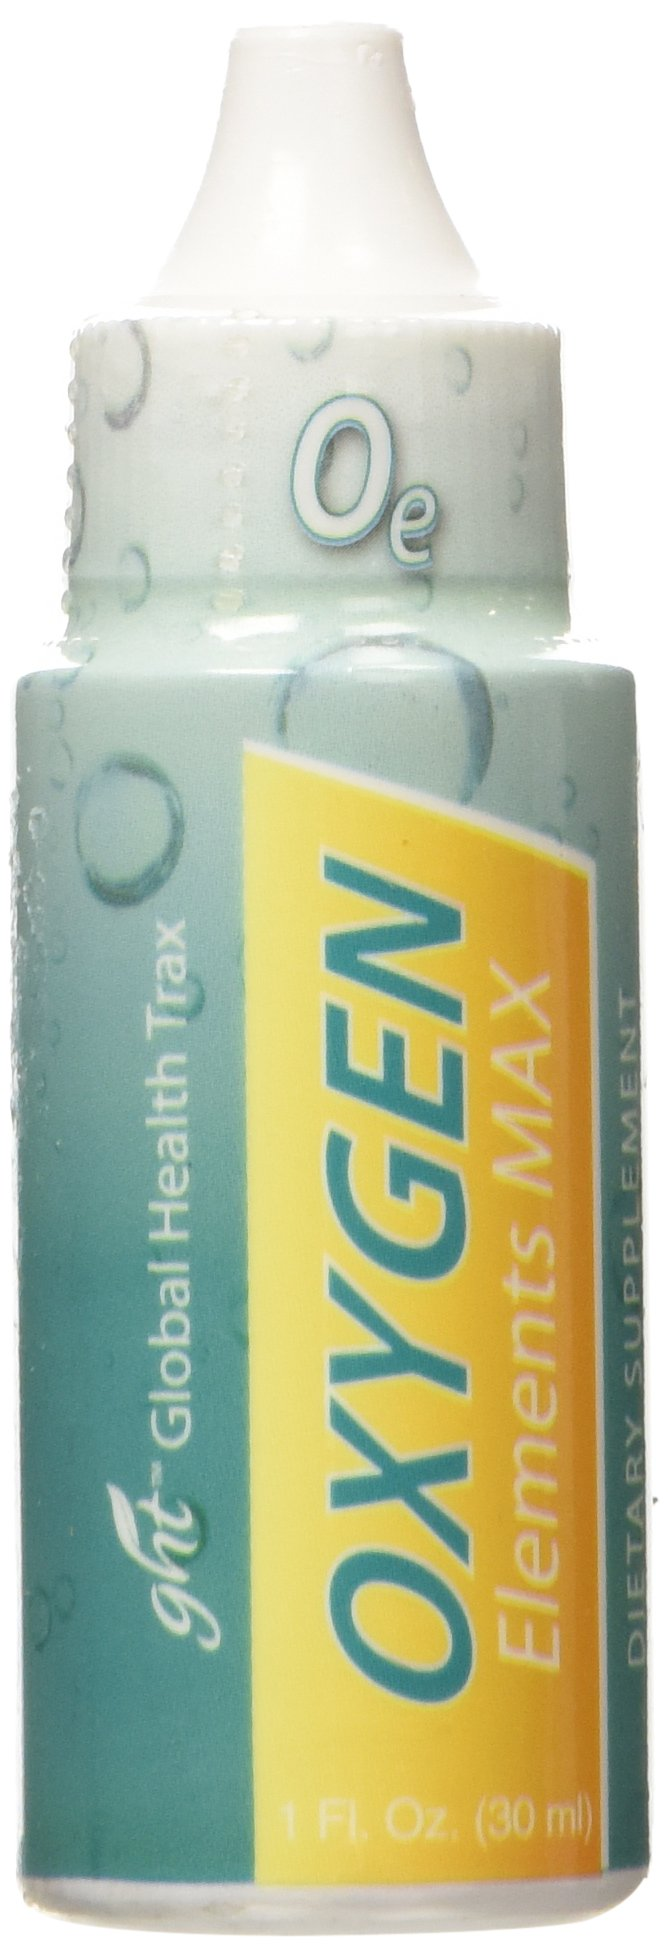 GHT Oxygen Elements Max Dietary Supplement, 1-Ounce Bottle